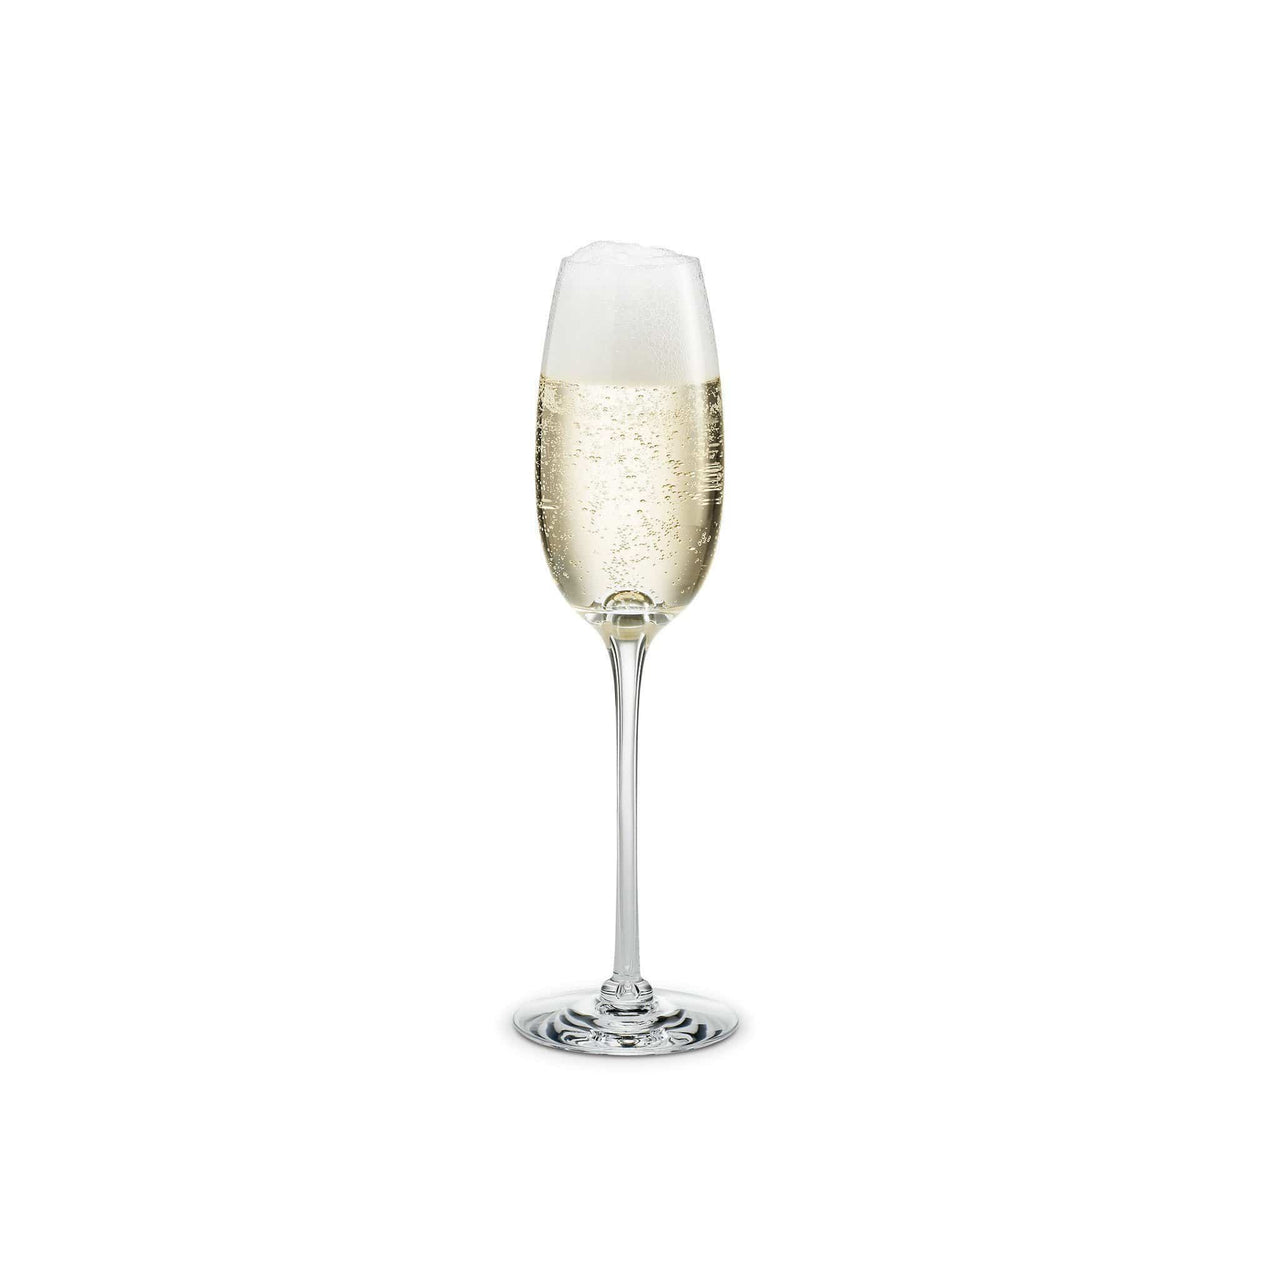 NORMODE Glassware Holmegaard Fontaine Champagne flute